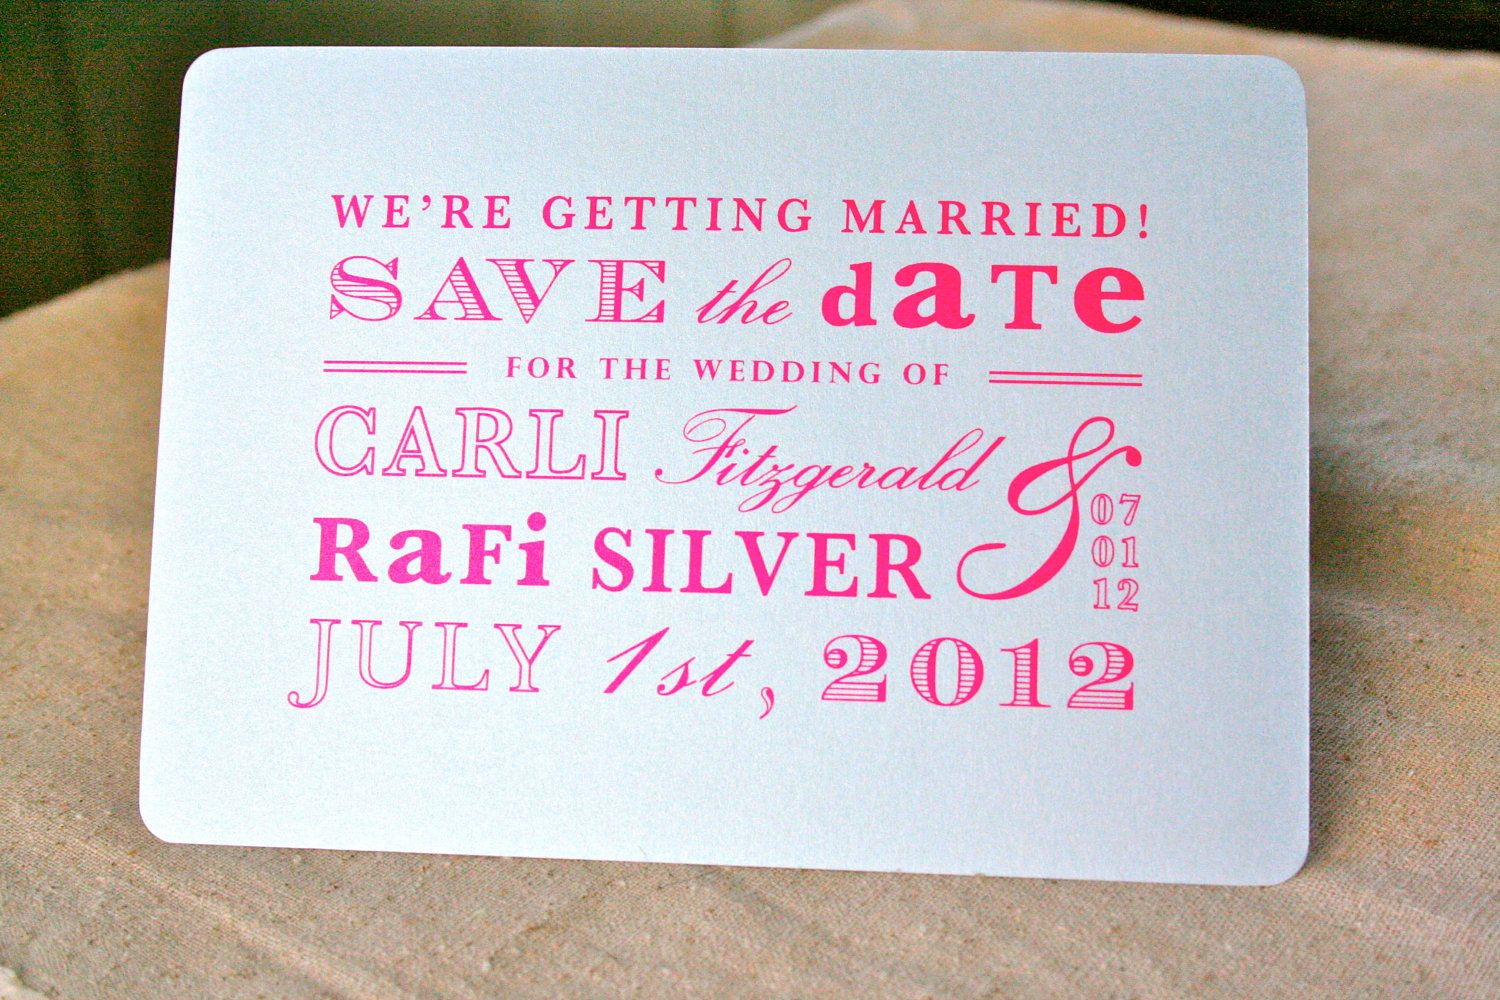 17 Best images about save the date – Wedding Save the Dates Ideas